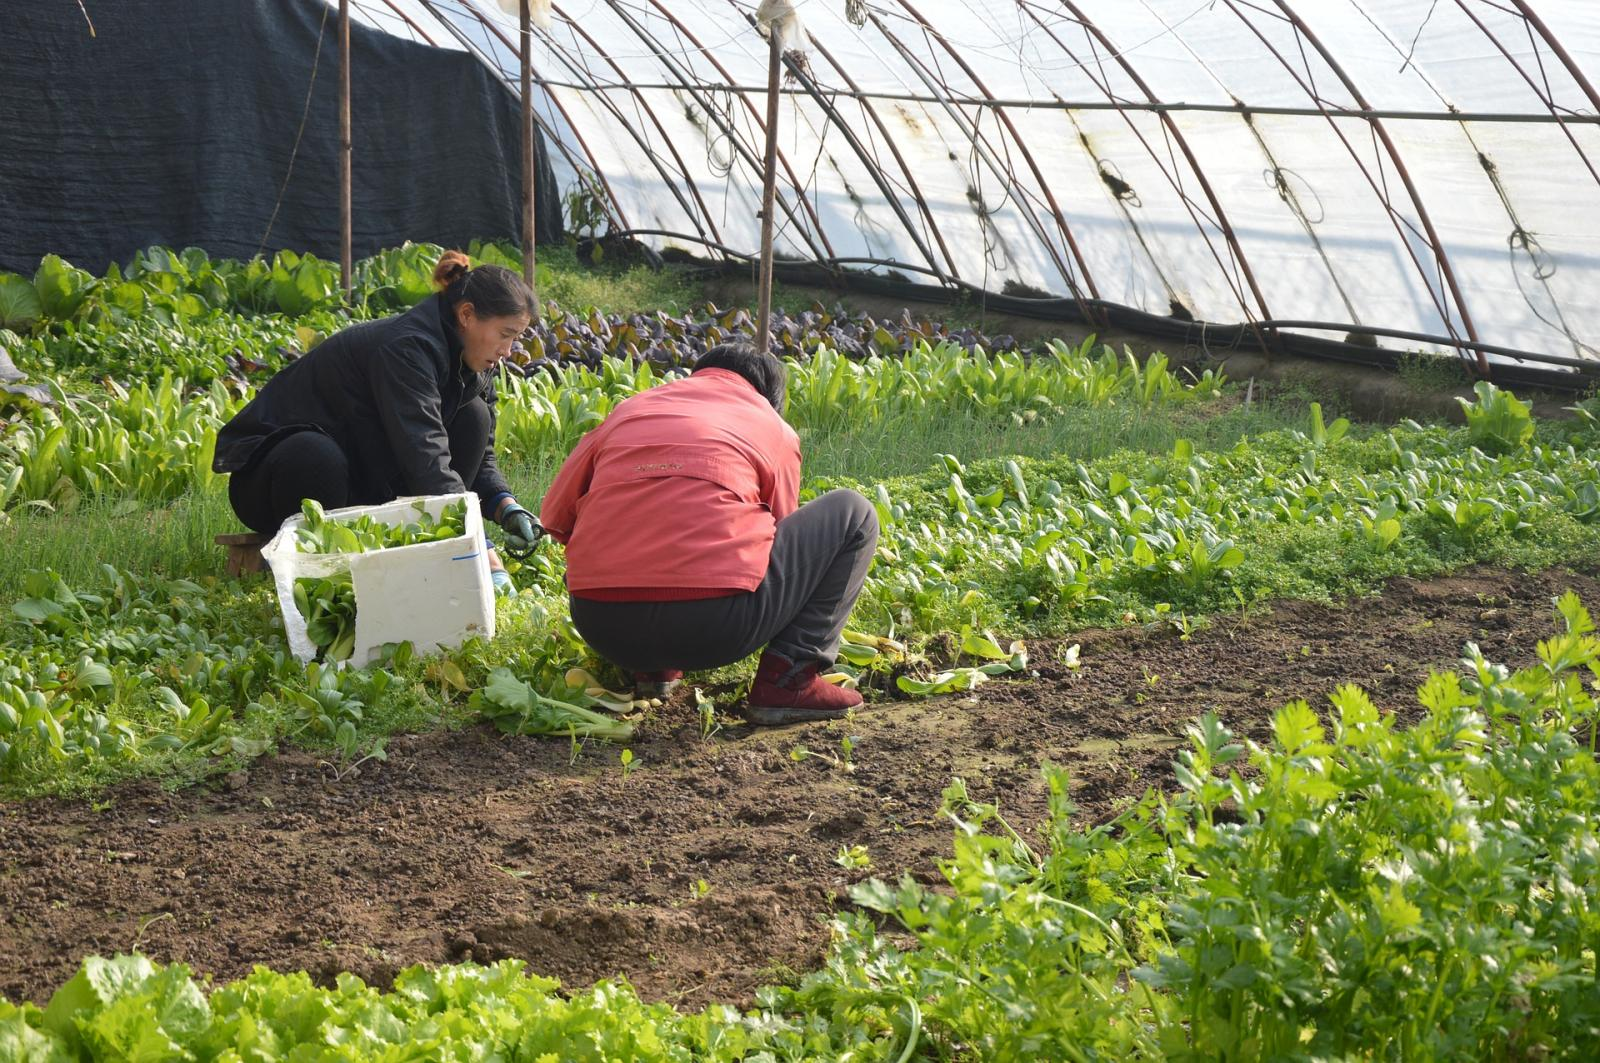 Farm workers in a polytunnel. Photo credit: Pixabay